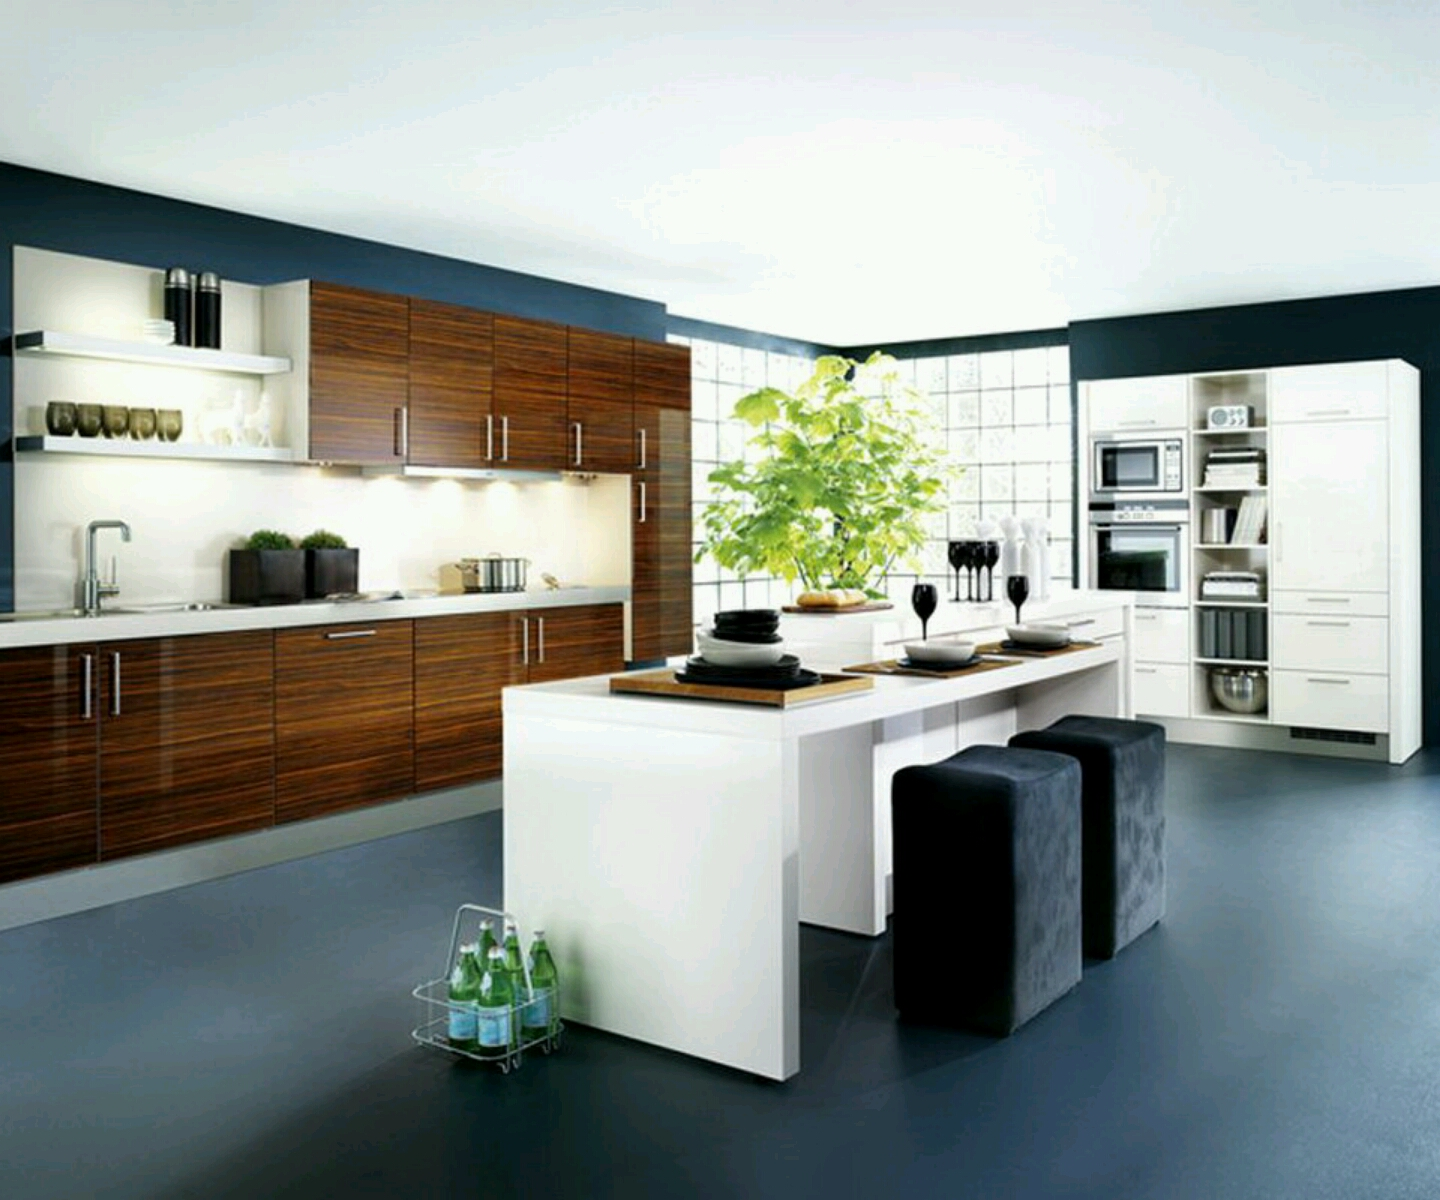 Modern Kitchen Designs 2013 : New home designs latest kitchen cabinets modern